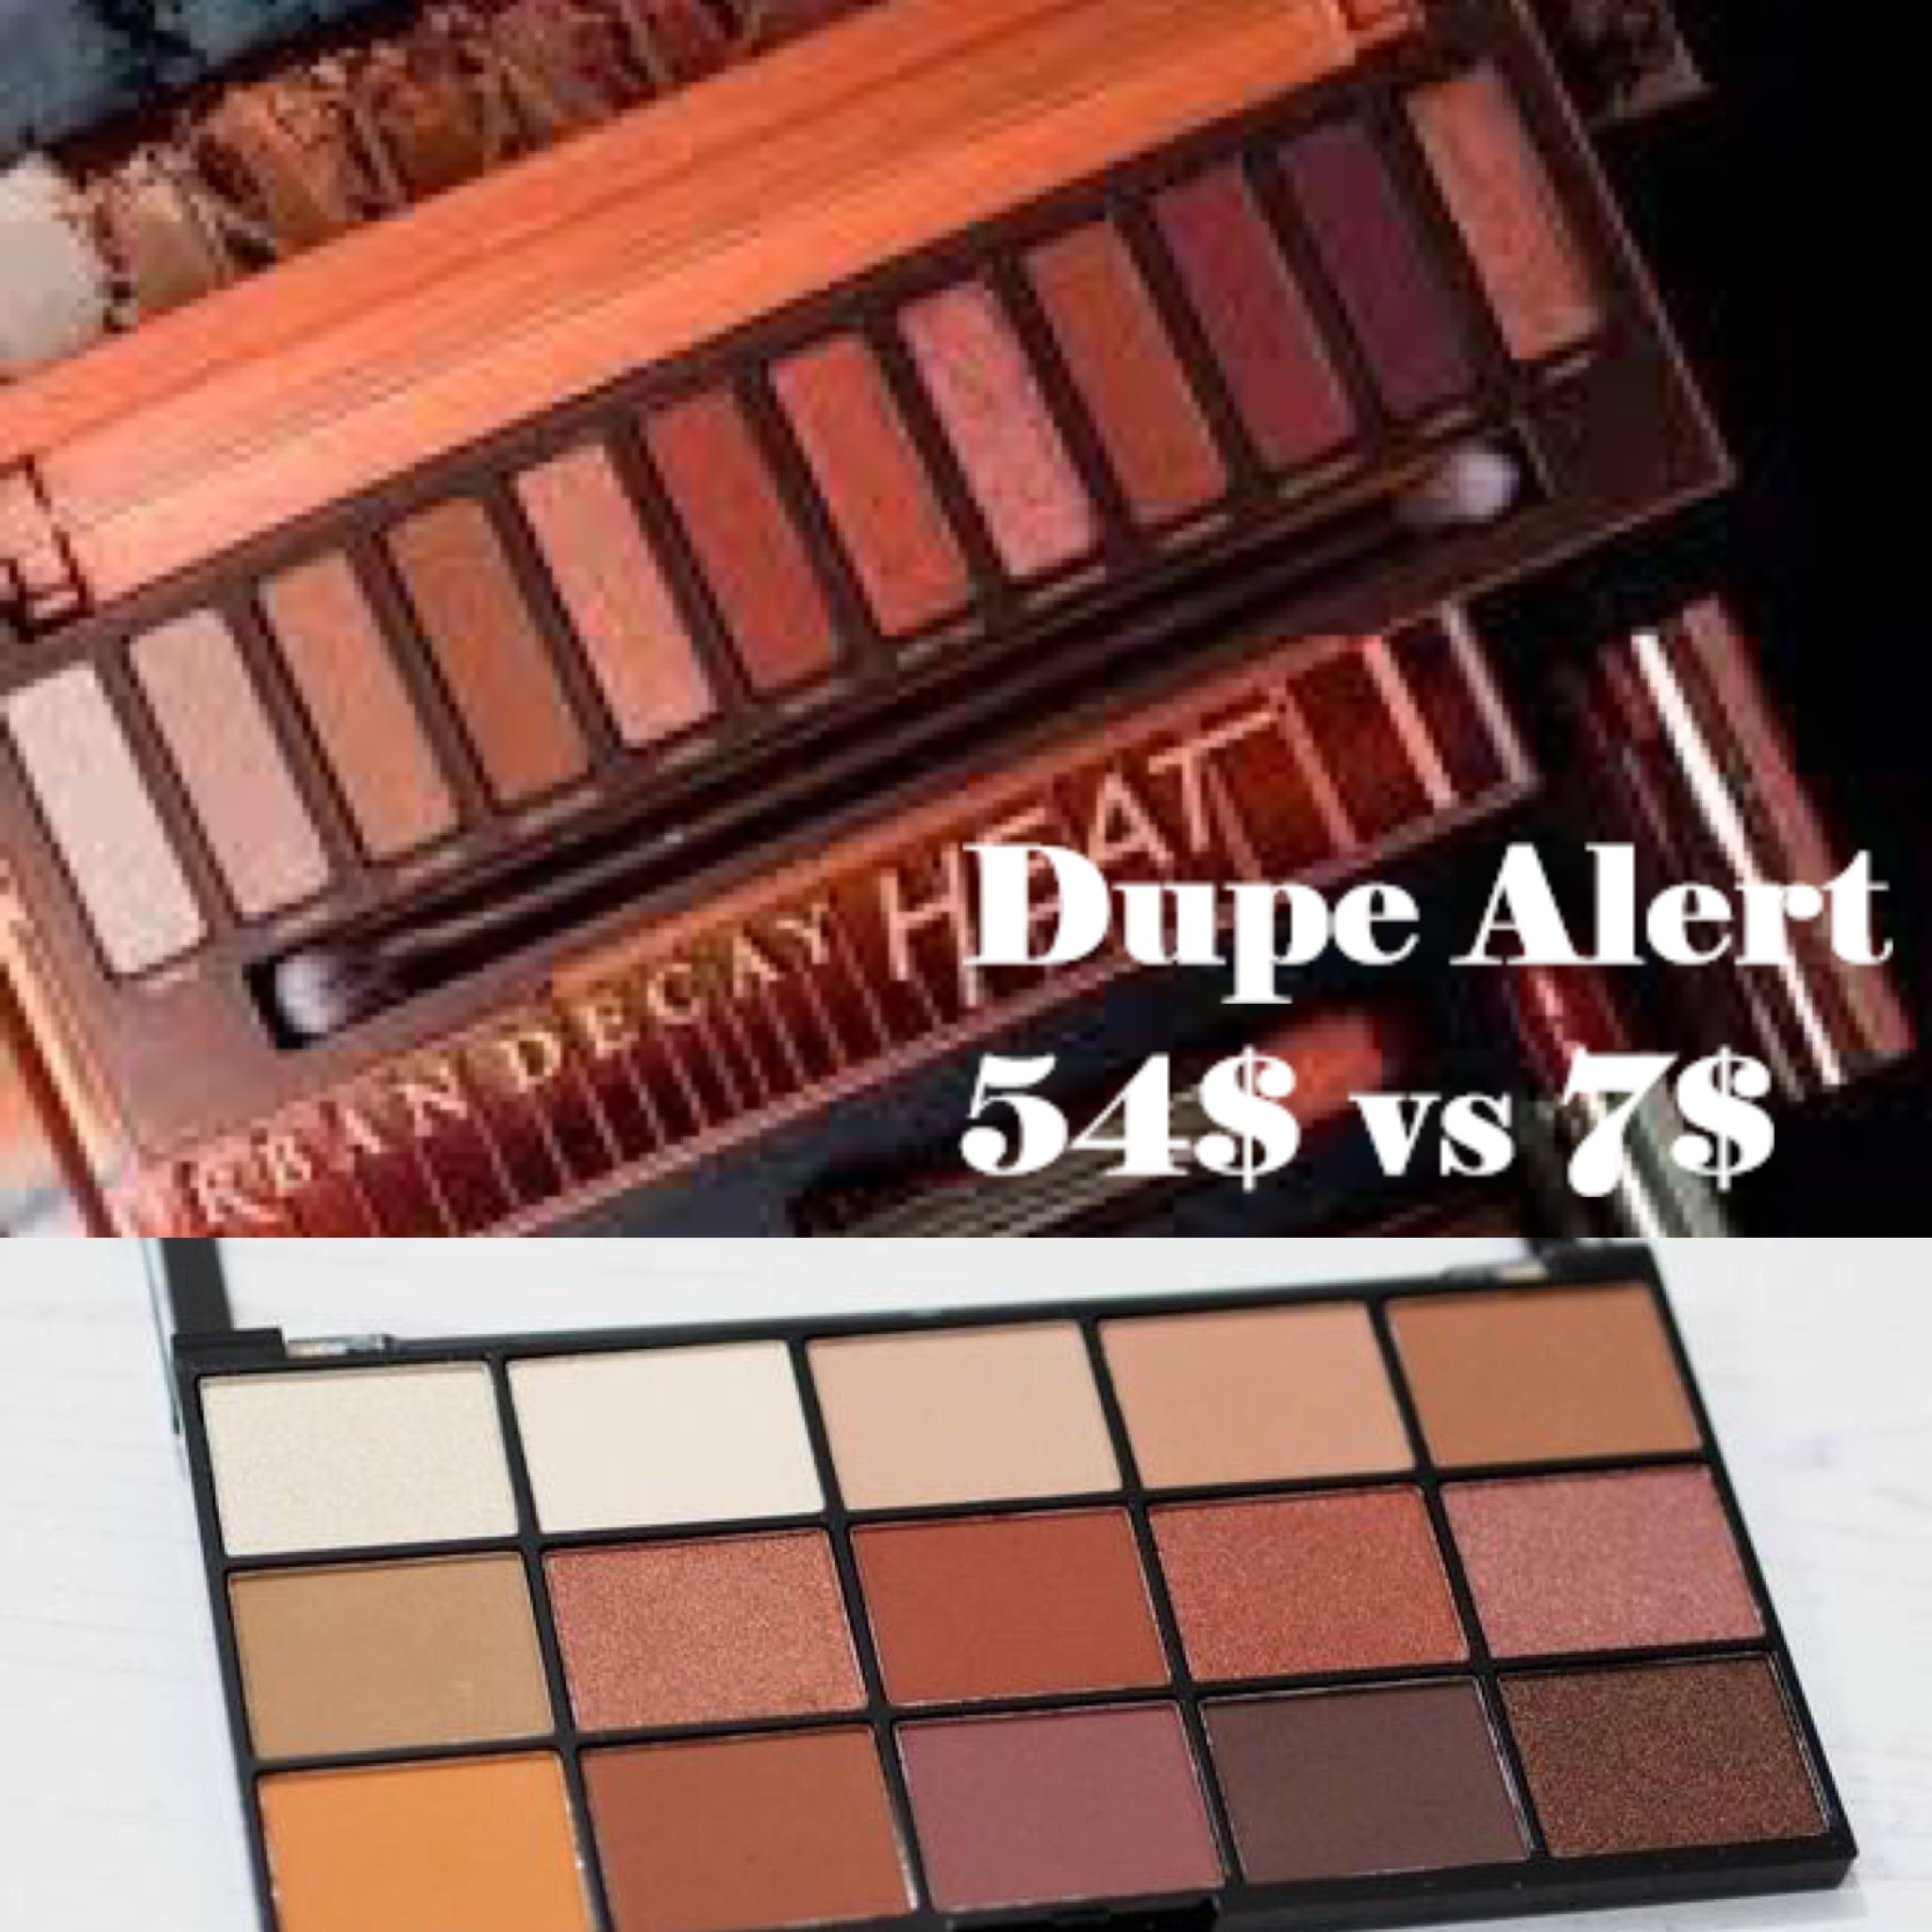 UD Naked Heat vs MUR Reloaded Iconic Fever